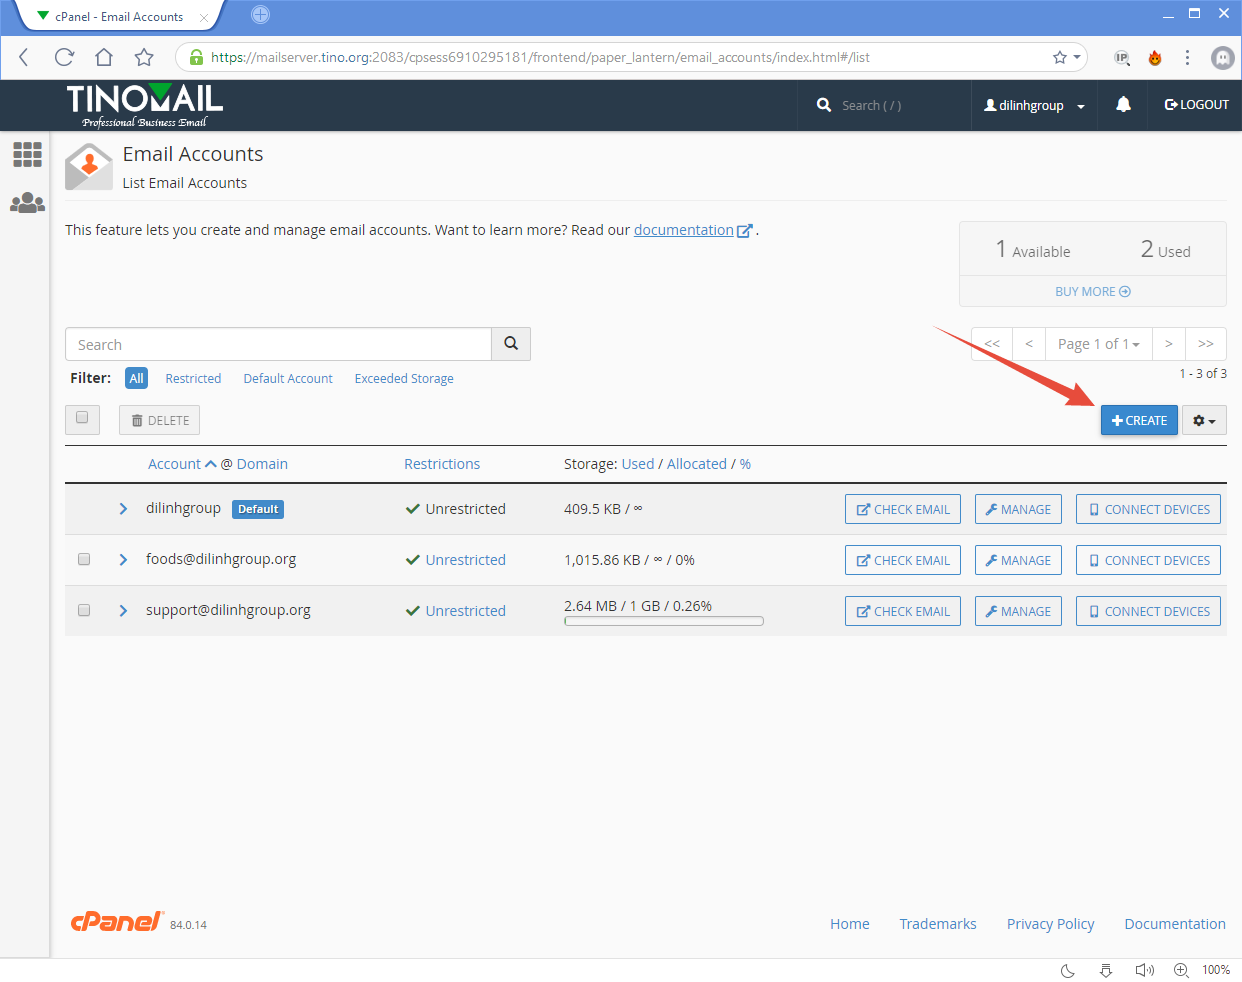 [cPanel] - Email Accounts 5